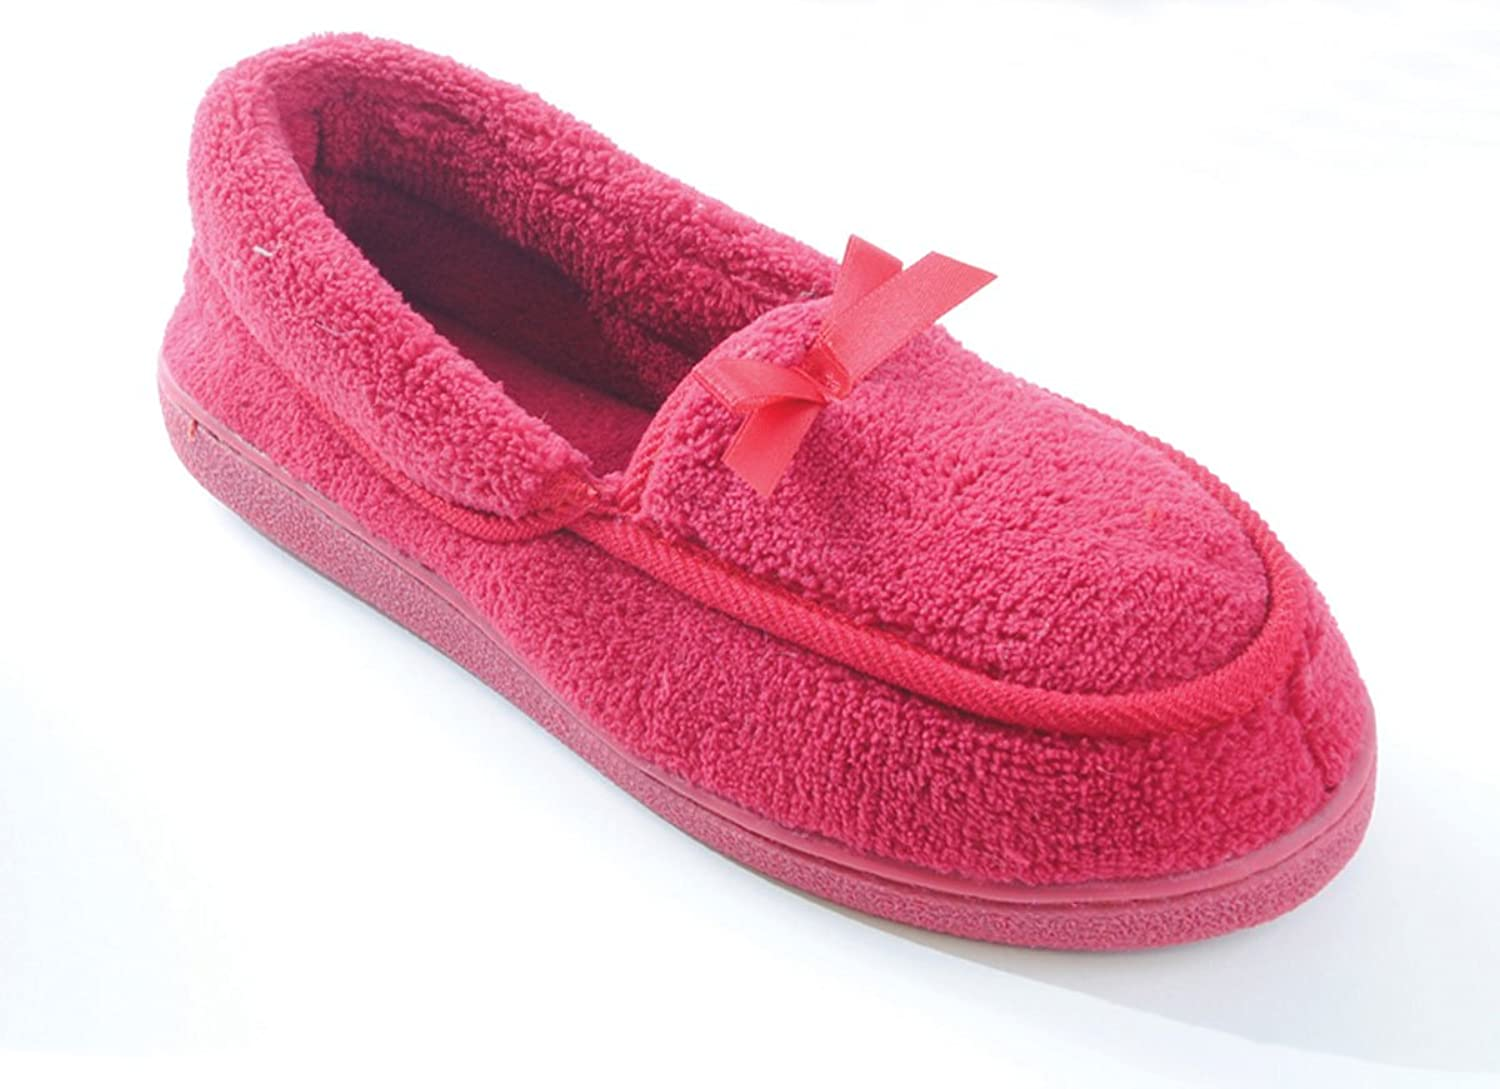 SlumberzzZ Womens Bound Terry Fleece Moccasin Slippers: Amazon.co.uk: Shoes  & Bags